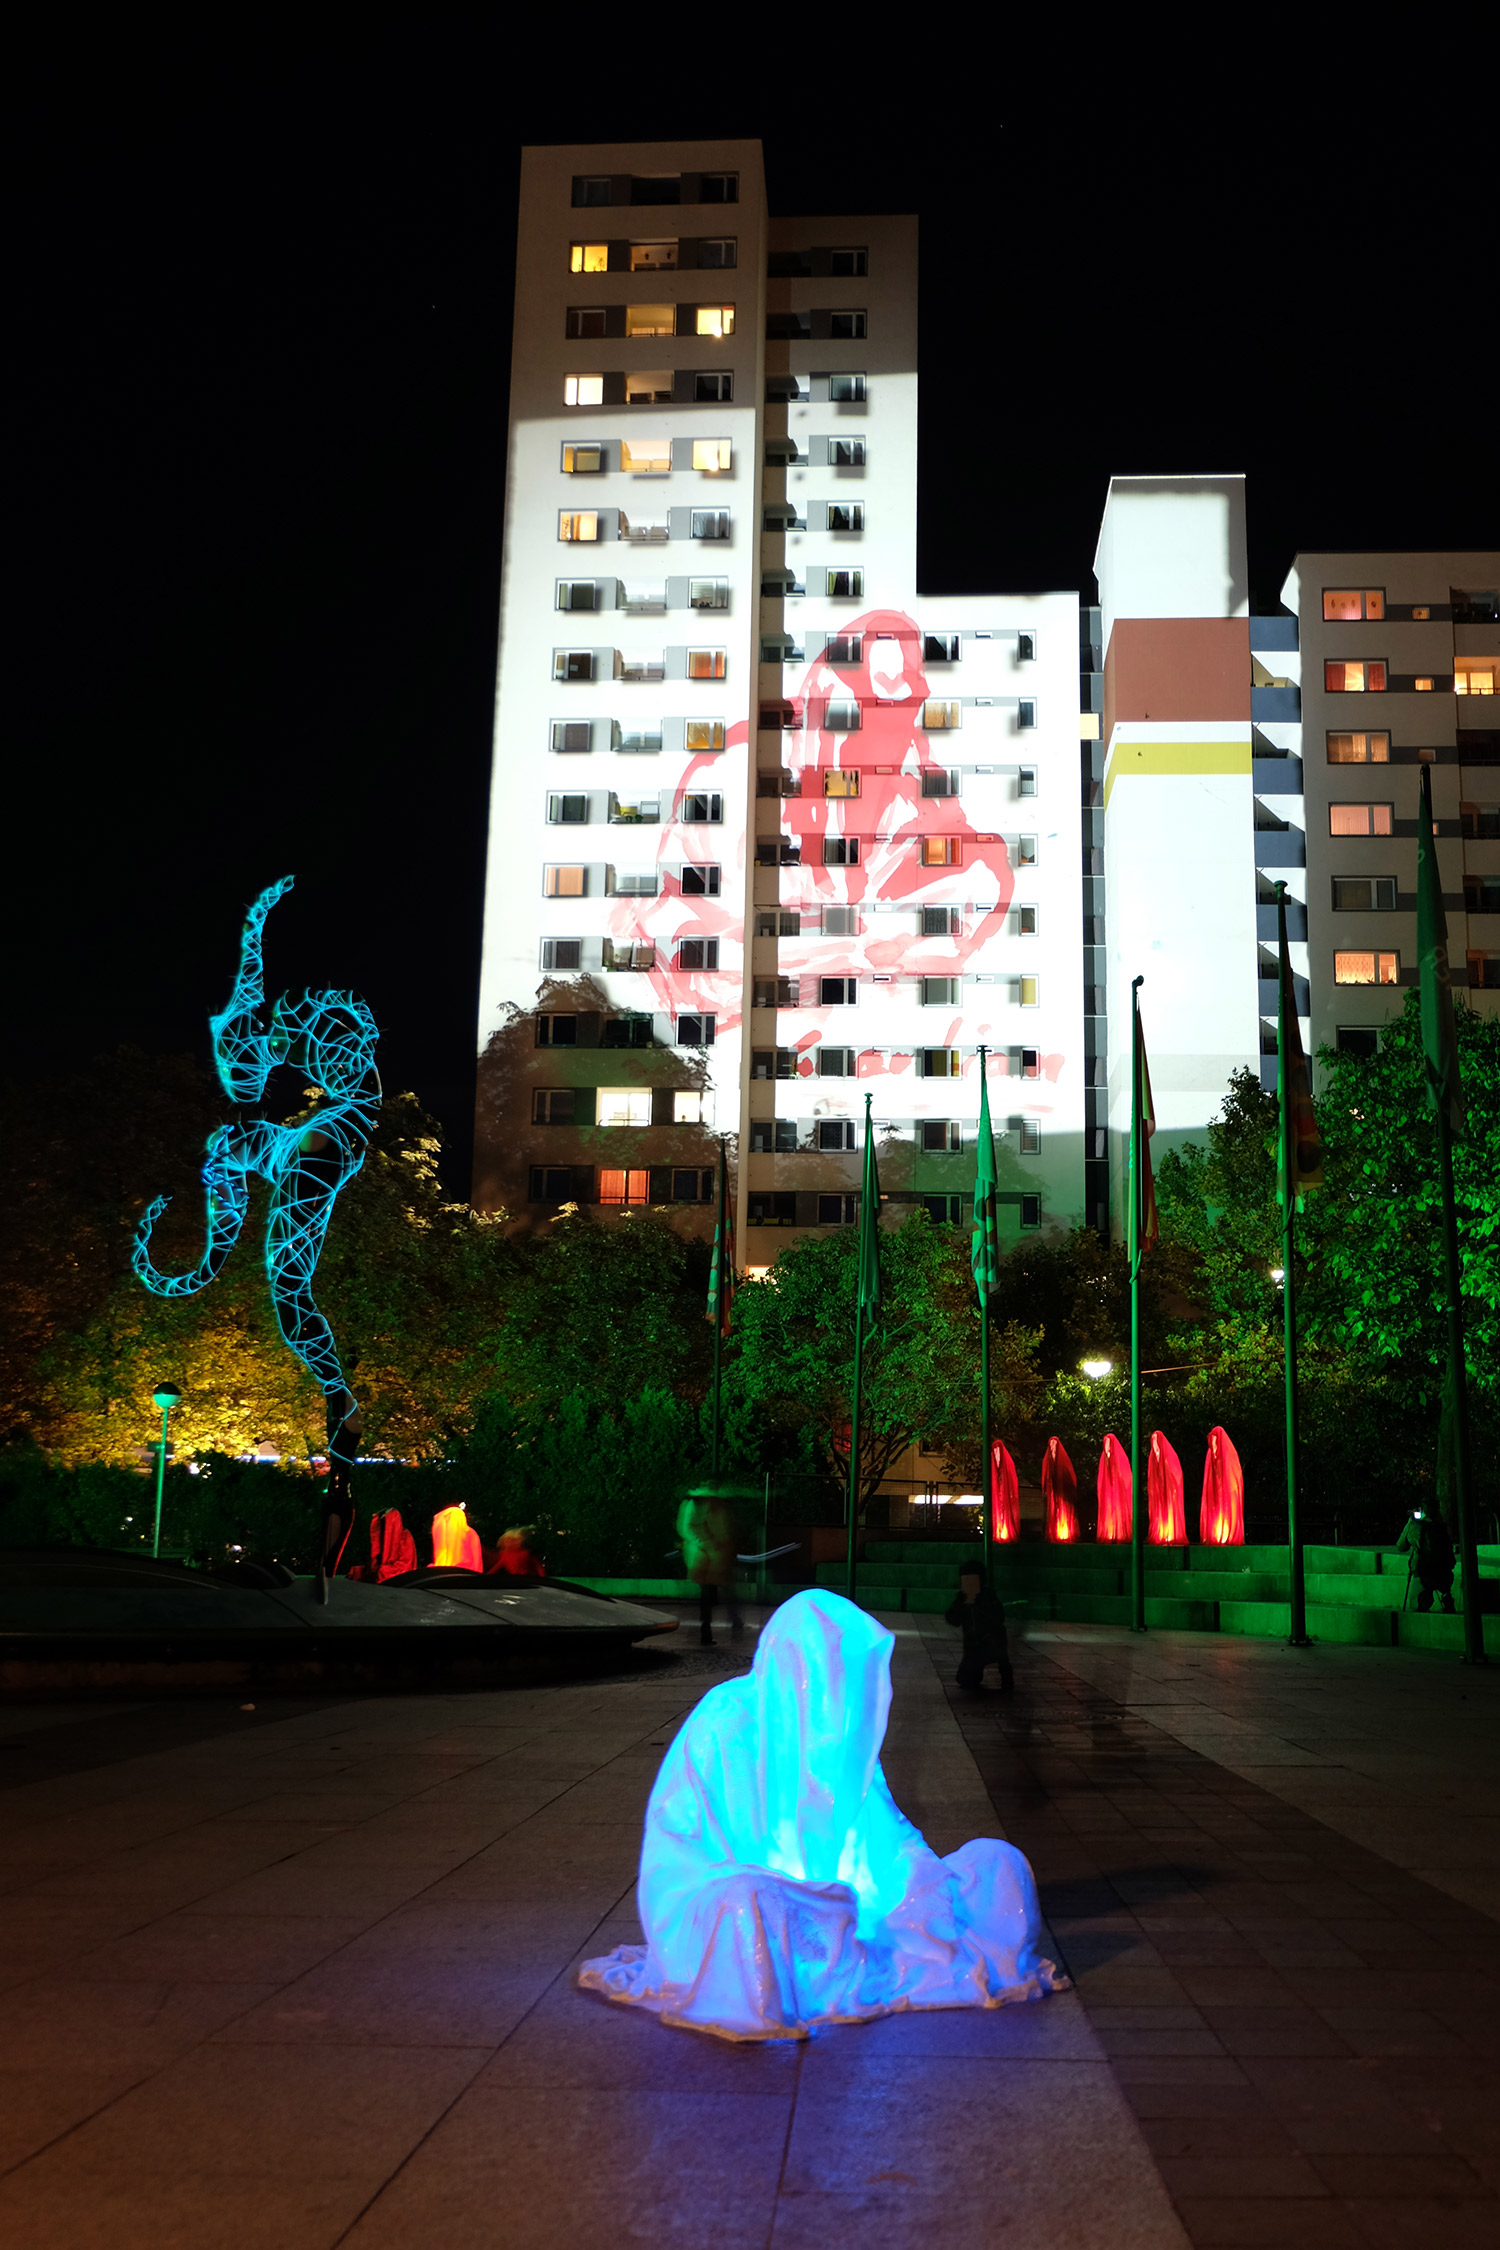 festival-of-lights-berlin-light-art-guardians-of-time-by-manfred-kielnhofer-contemporary-art-sculpture-statue-fine-art-design-ghost-faceless-9057